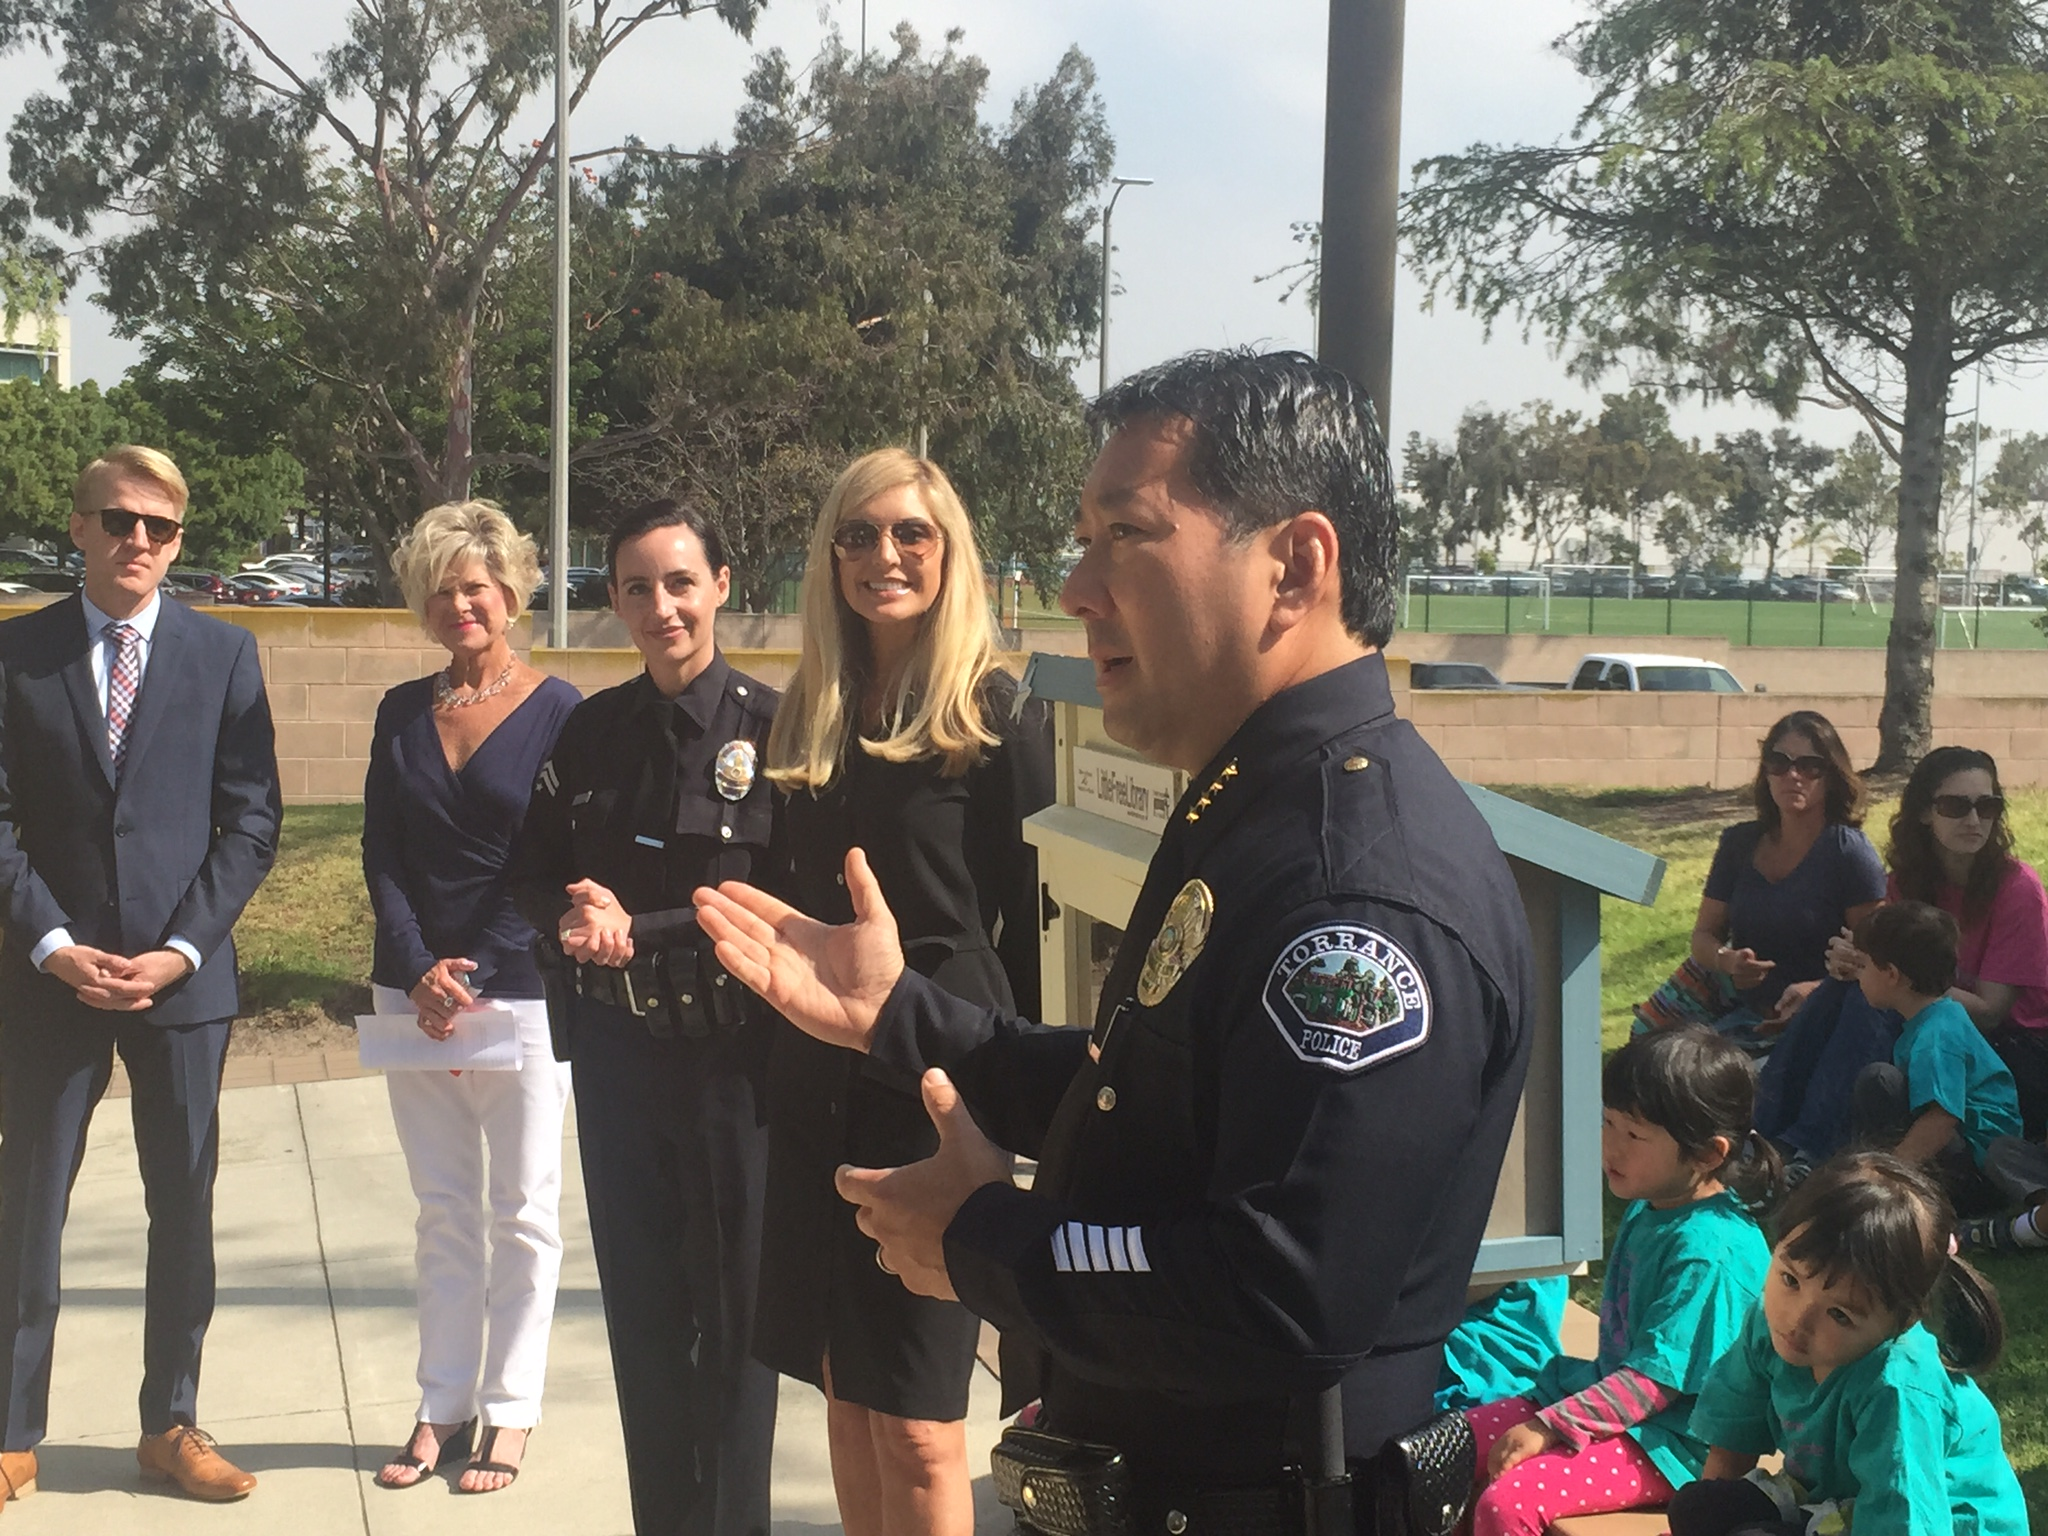 """Child custody exchanges take place in the police department lobby regularly and the Little Free Library will be a welcoming activity for all involved."" - Torrance Chief of Police, Mark Matsuda"